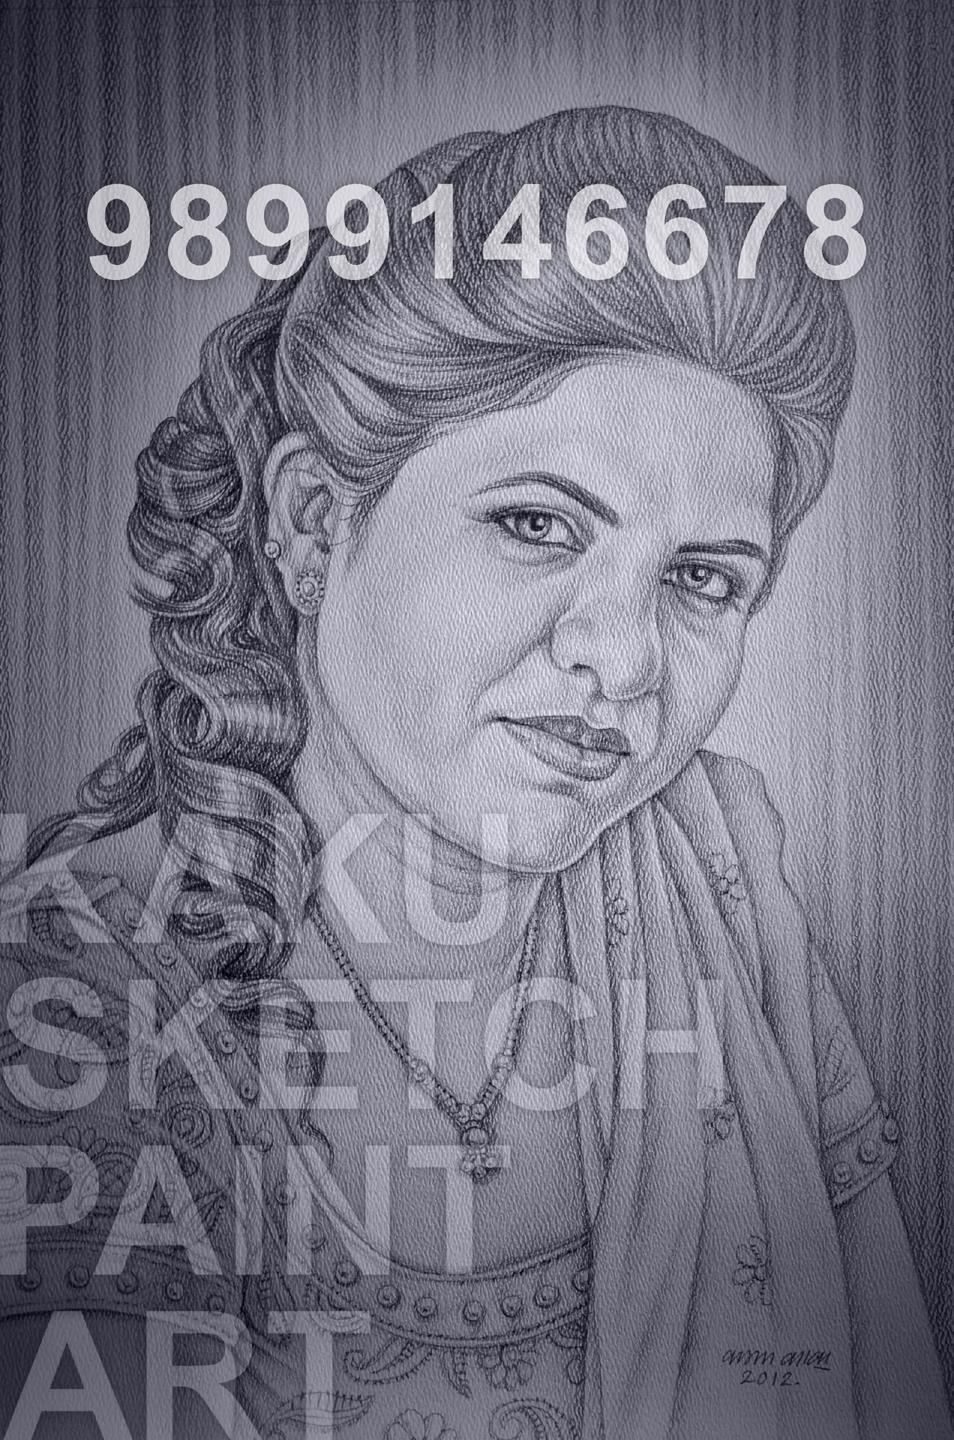 Best pencil sketch artist portrait artist delhi delhi delhi india